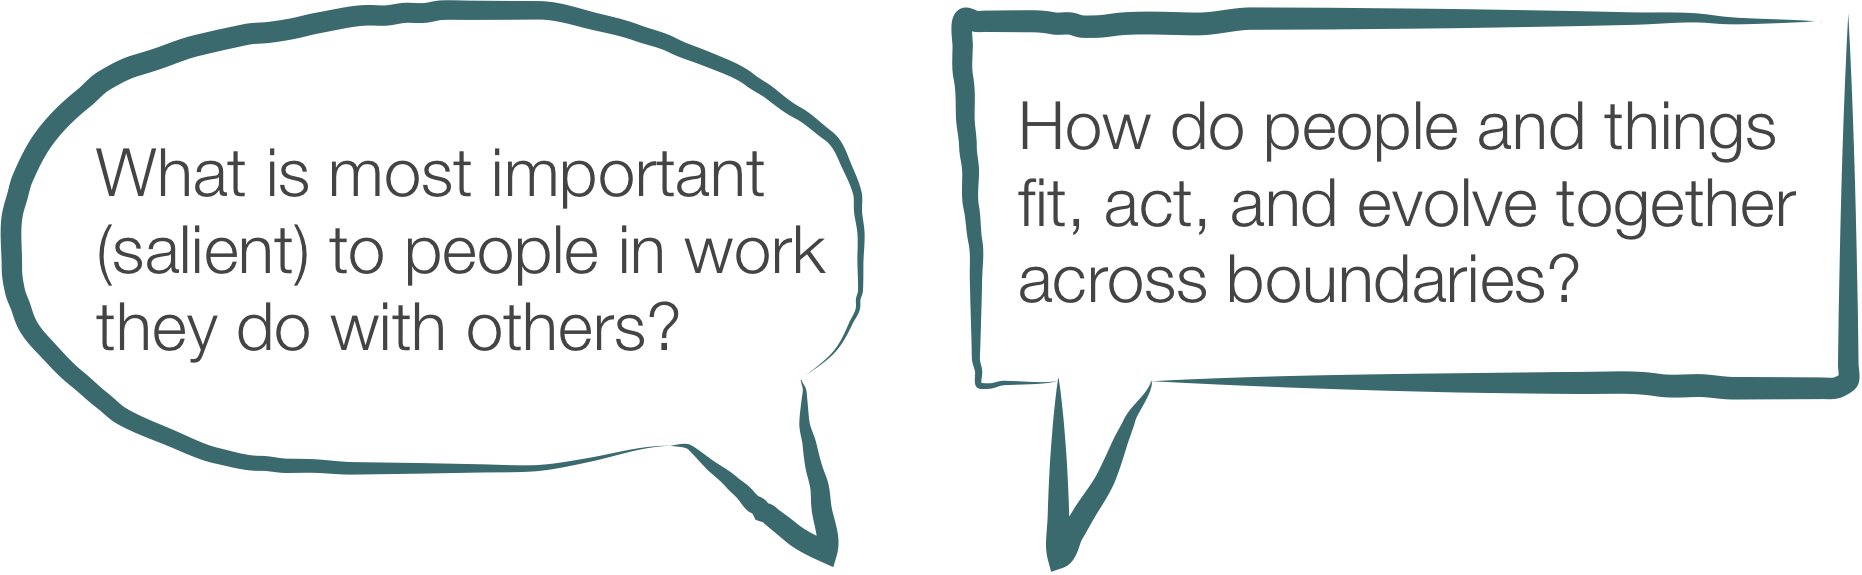 Interweaving's two key questions.